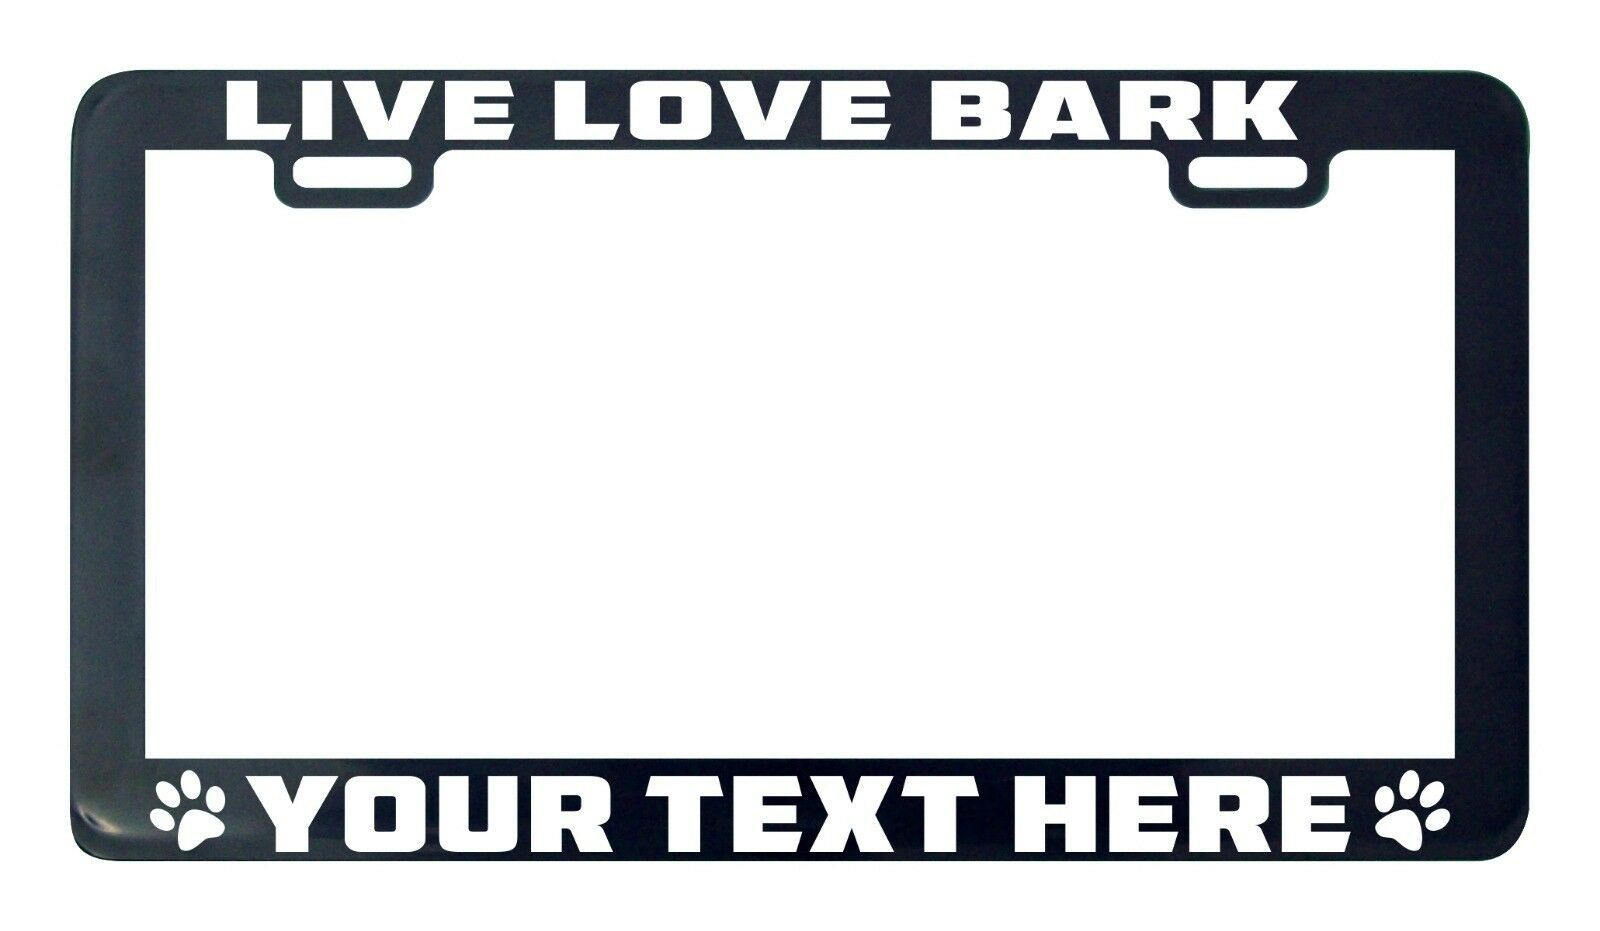 Primary image for Live love bark dog design your own custom personalized license plate frame